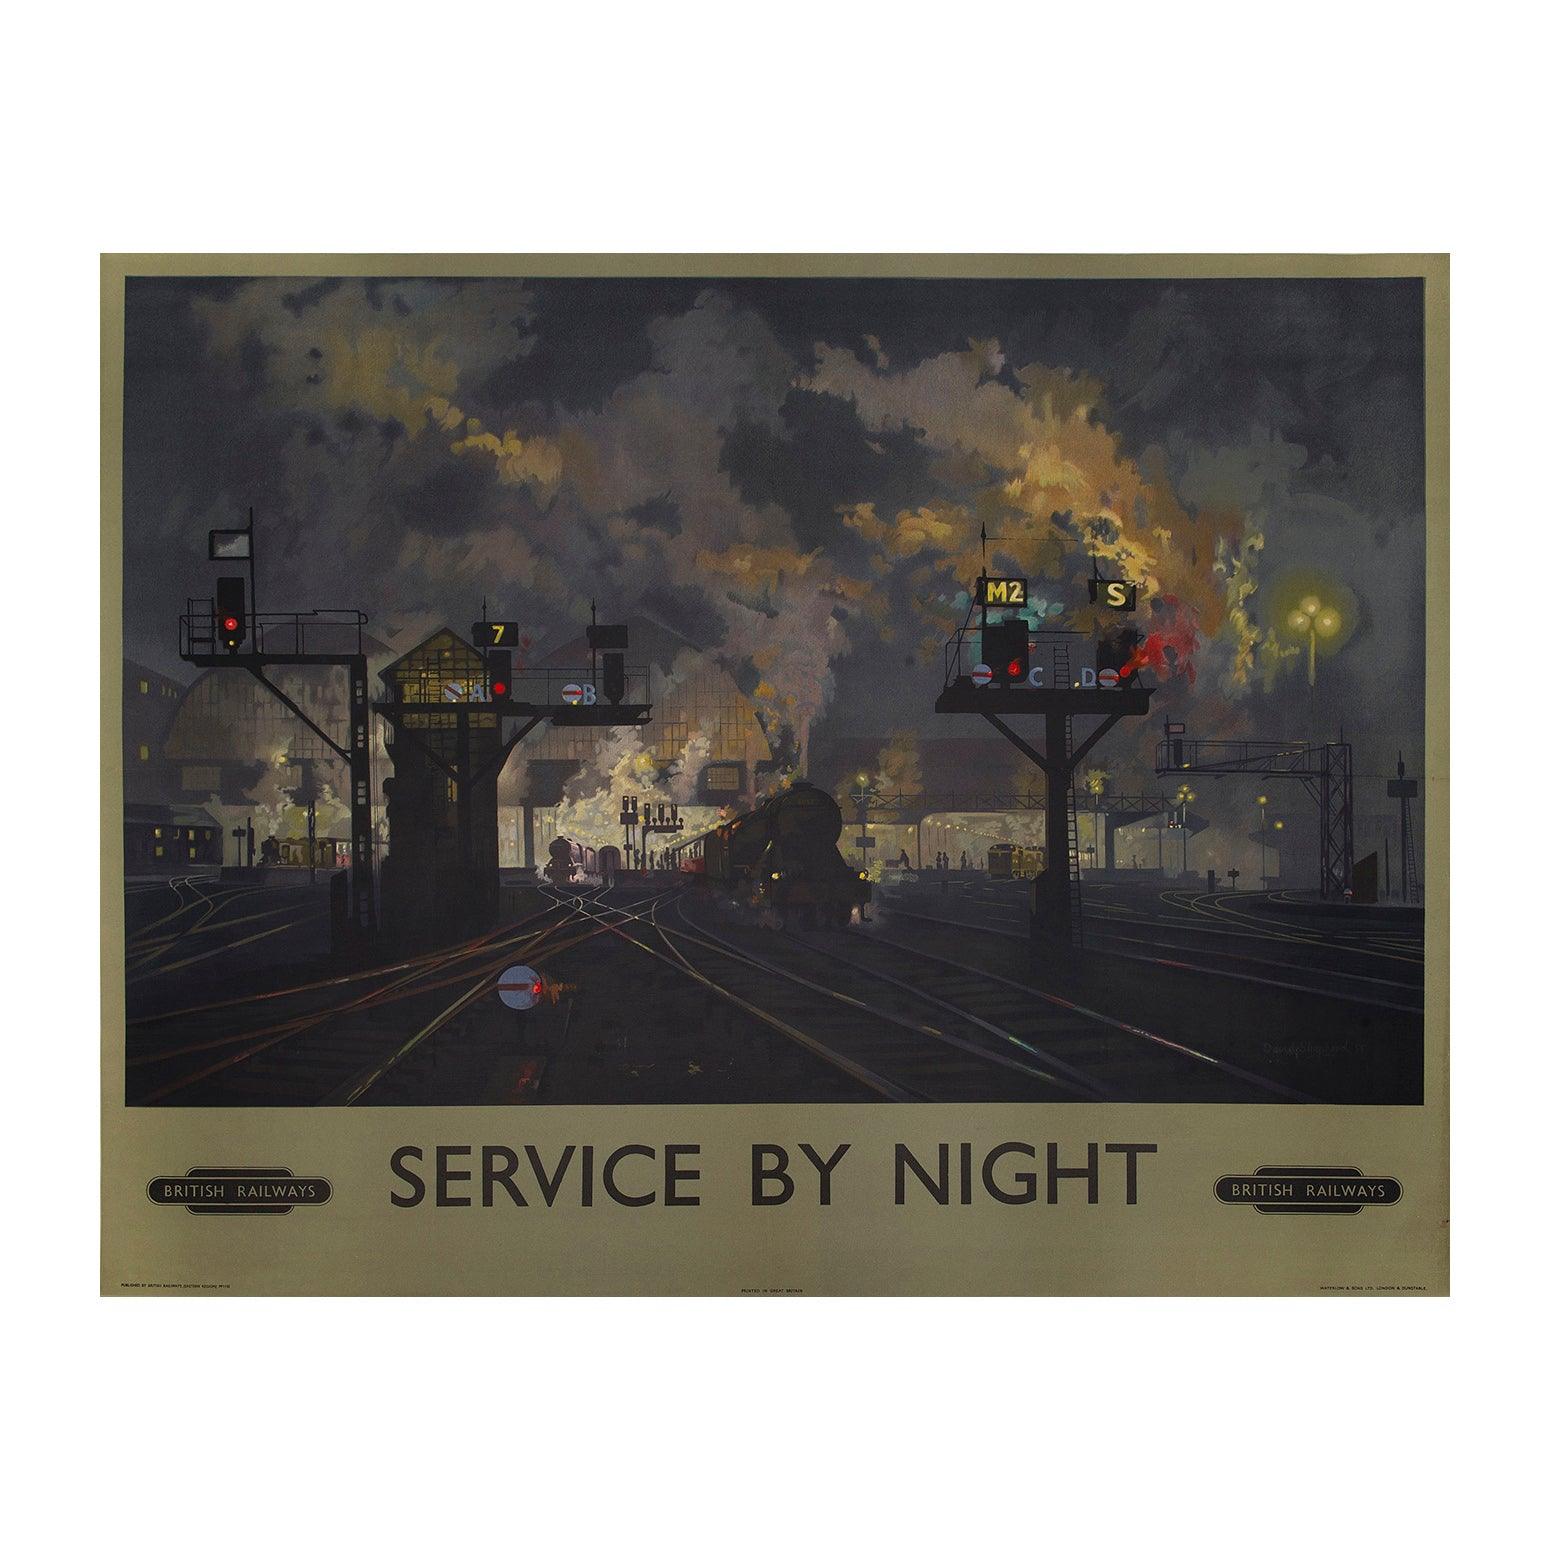 Service by Night